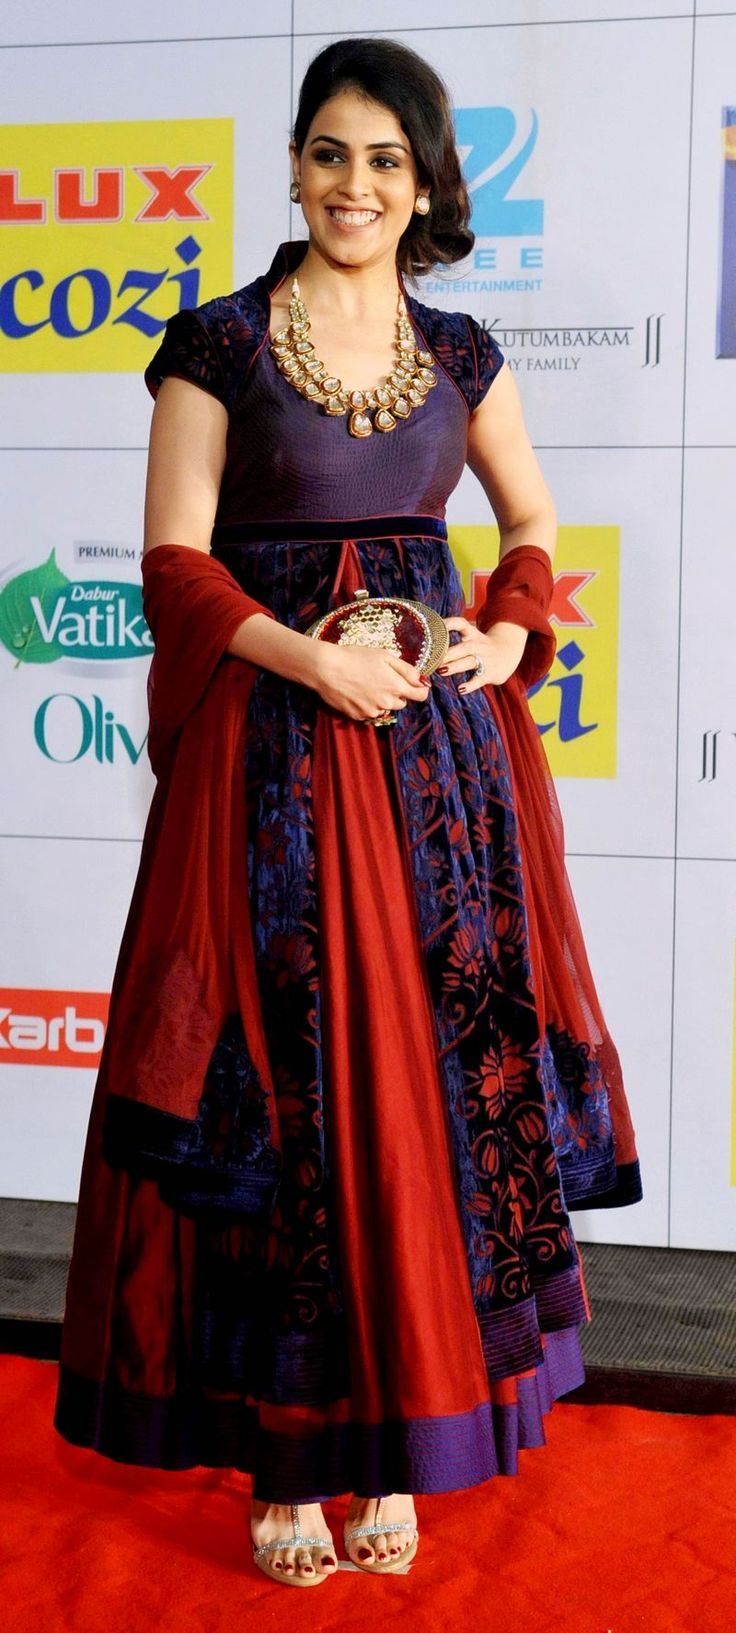 Genelia D'Souza Deshmukh flashed her trademark 100-watt smile for the cameras on the red carpet at the Zee Cine Awards 2014.